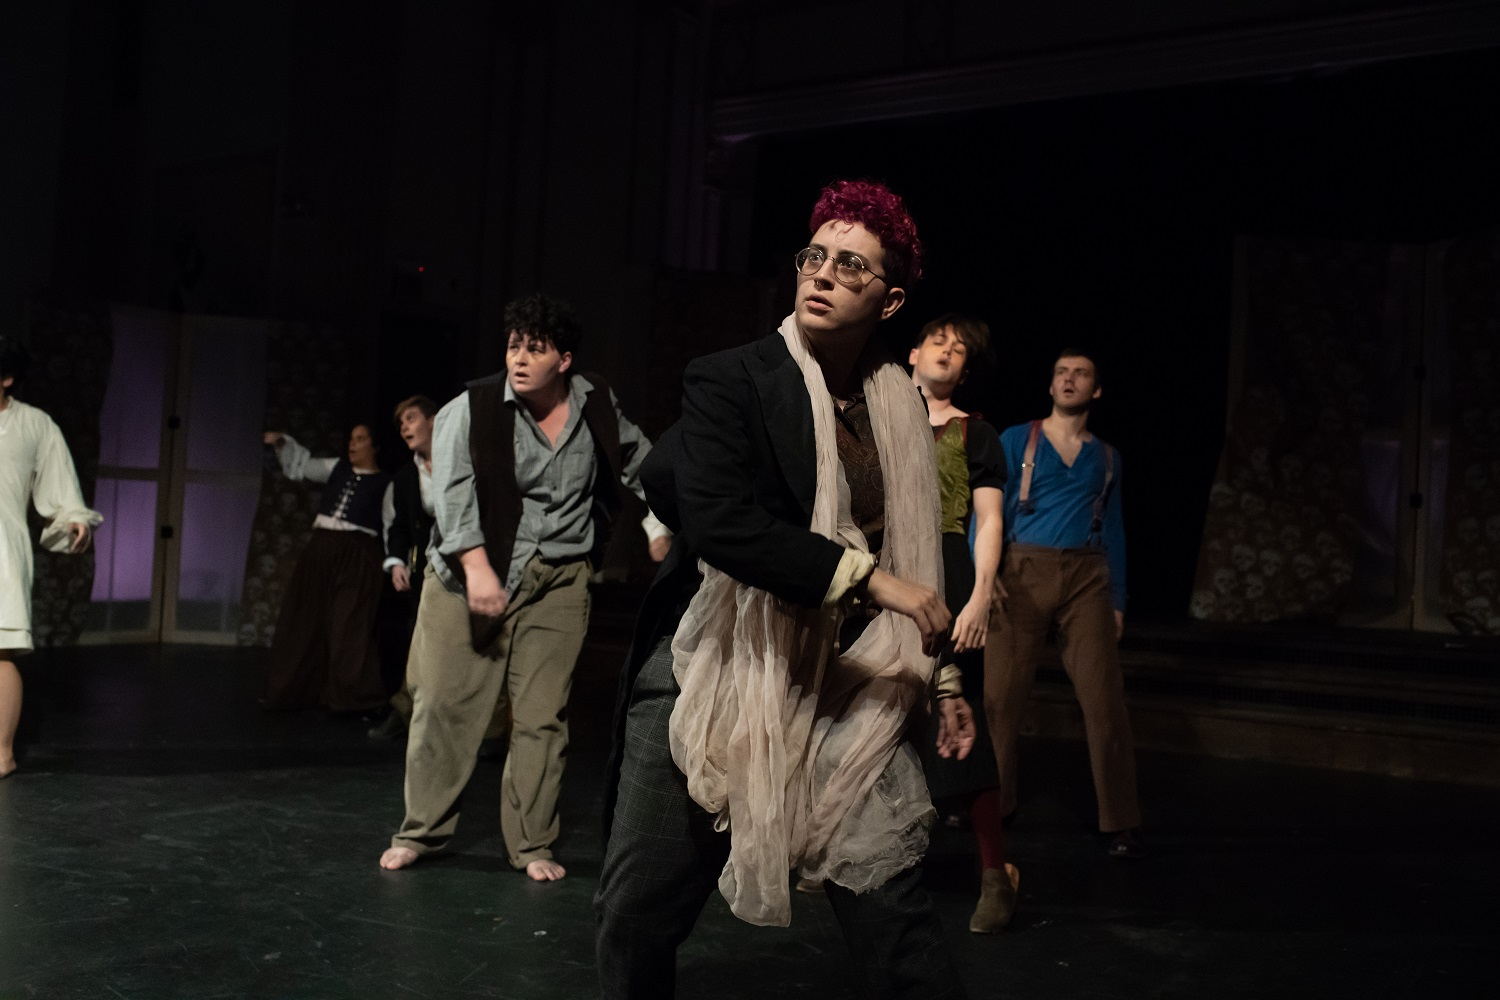 Emilie Modaff as Gui (center) with the cast of  Les Innocents/The Innocents.  Photo credit   Sally Blood